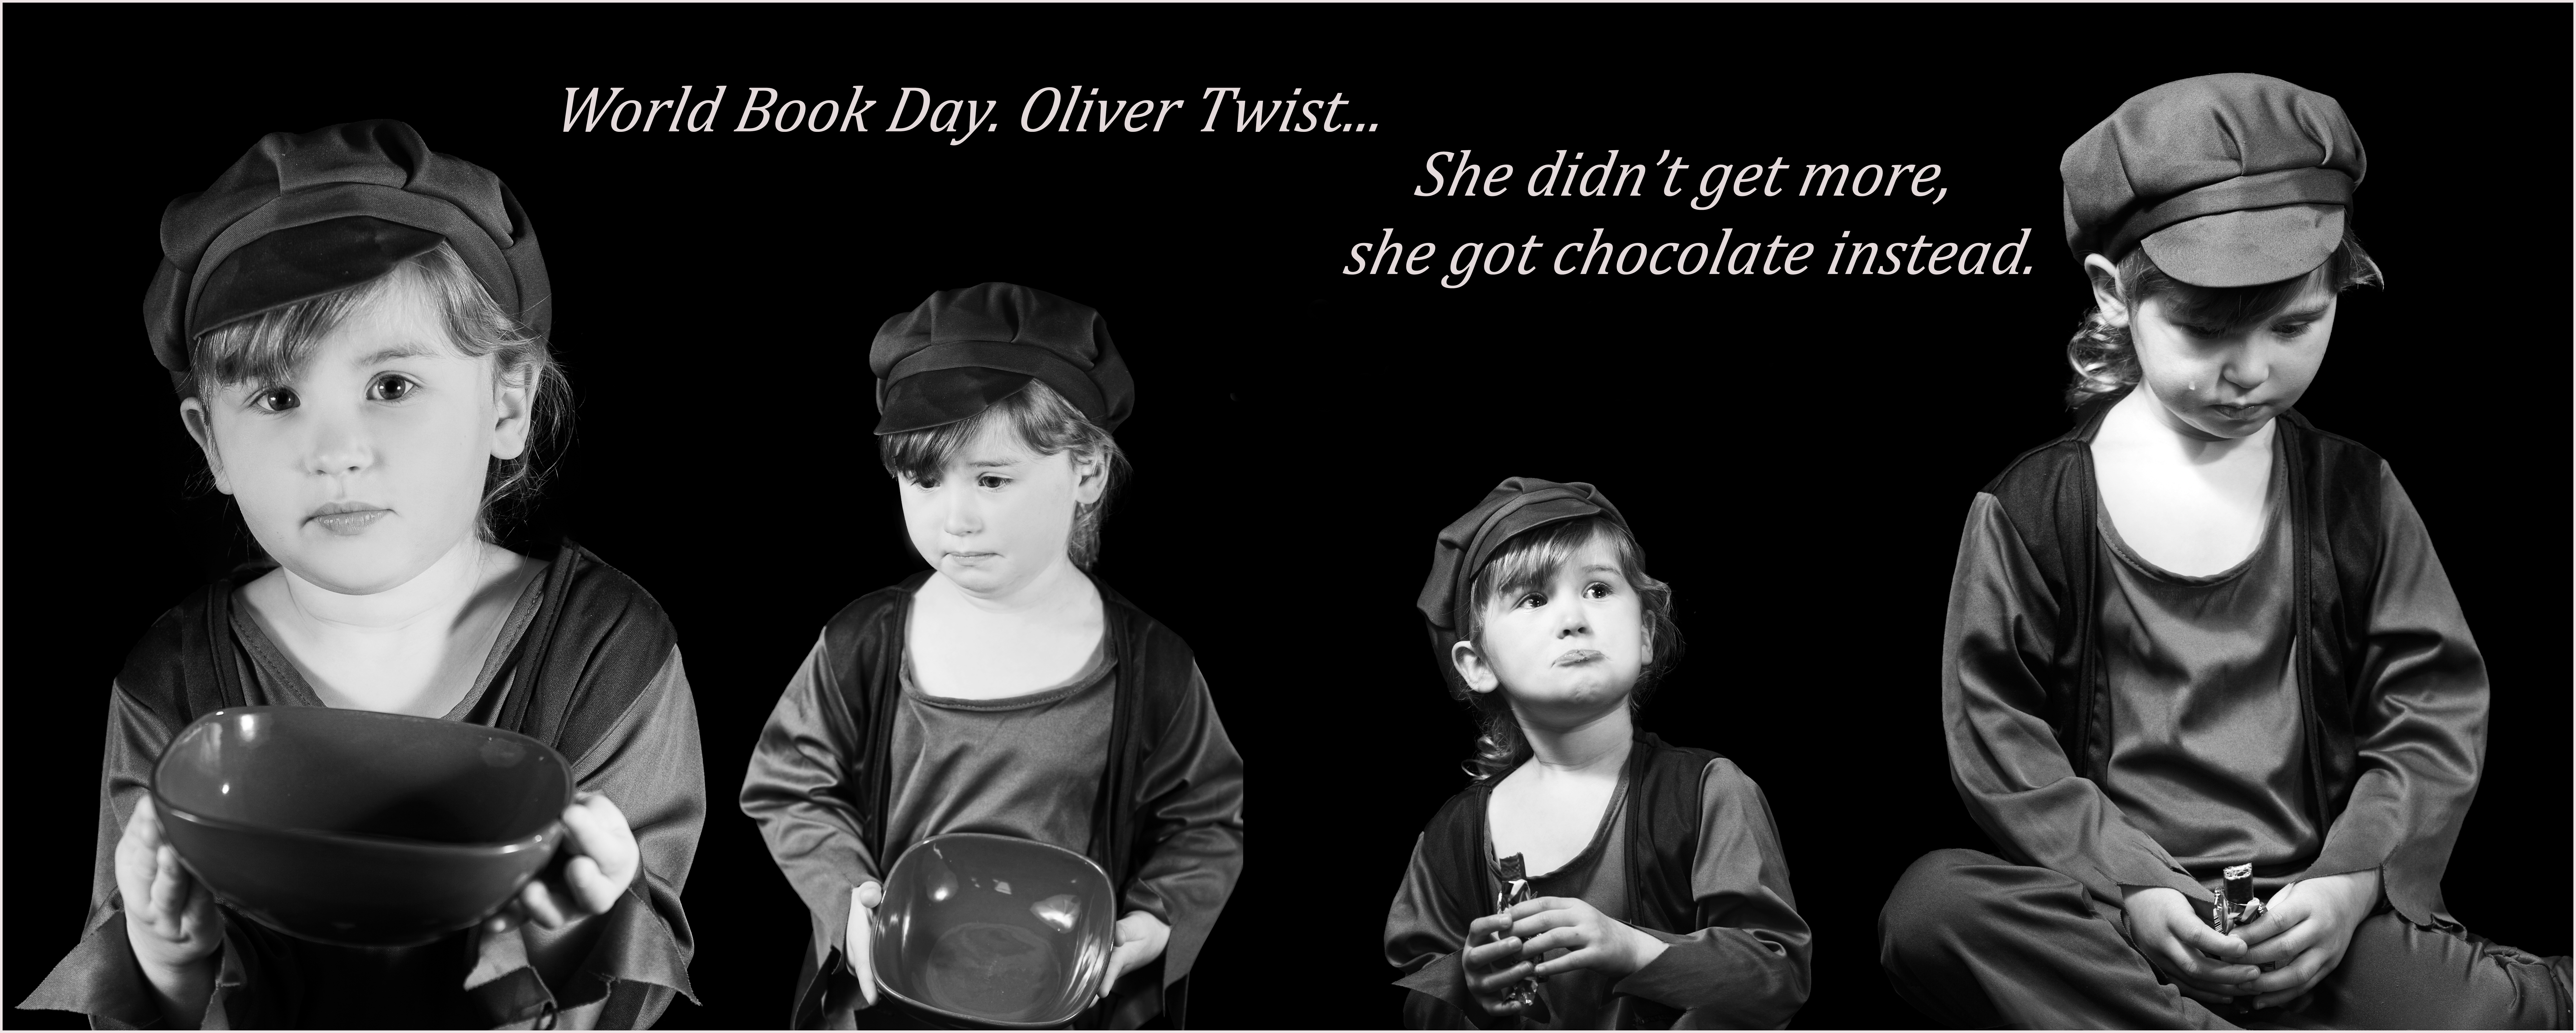 Oliver Twist. World Book Day 2016